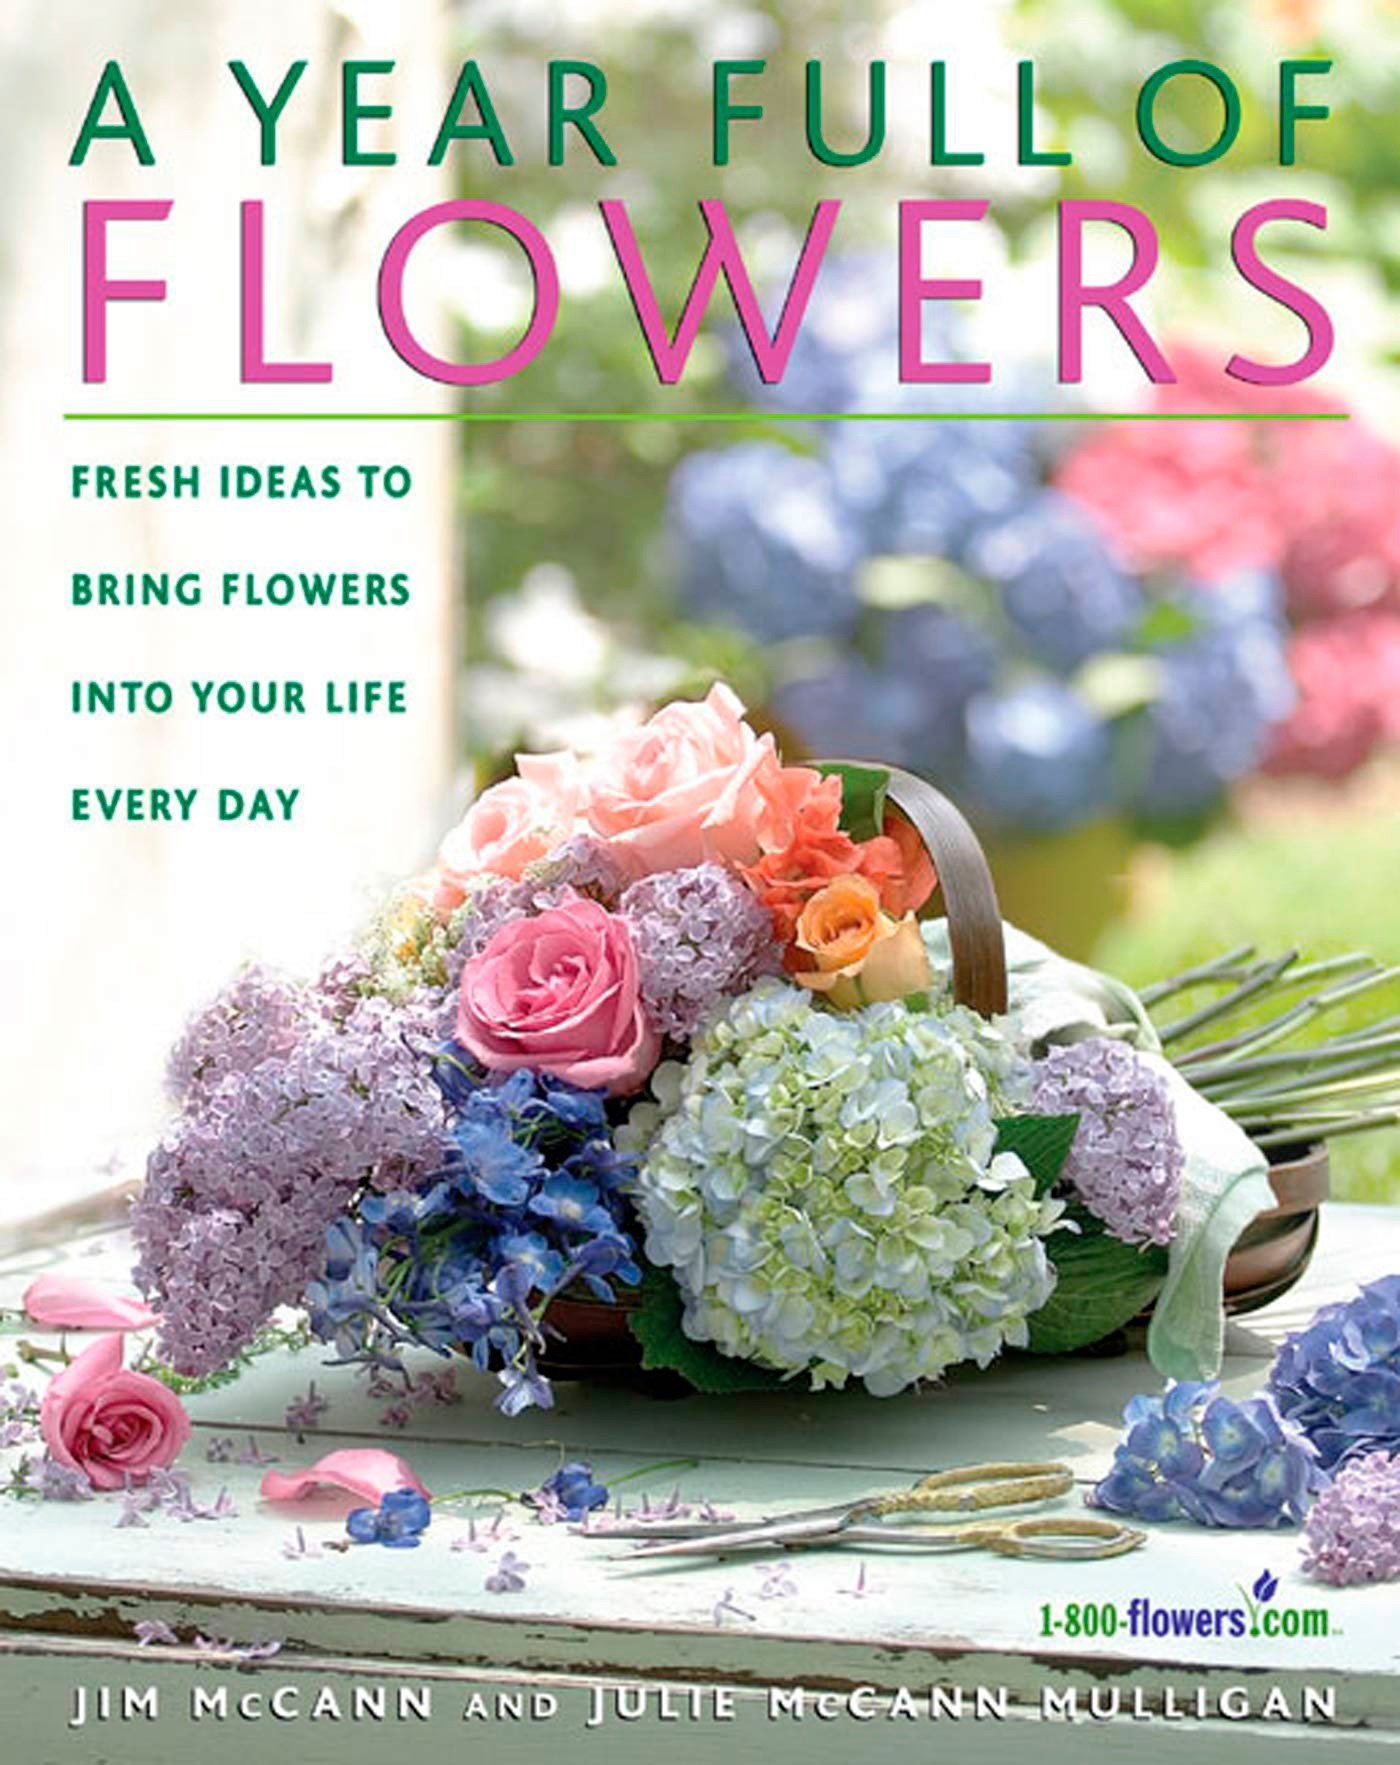 A Year Full Of Flowers Fresh Ideas To Bring Flowers Into Your